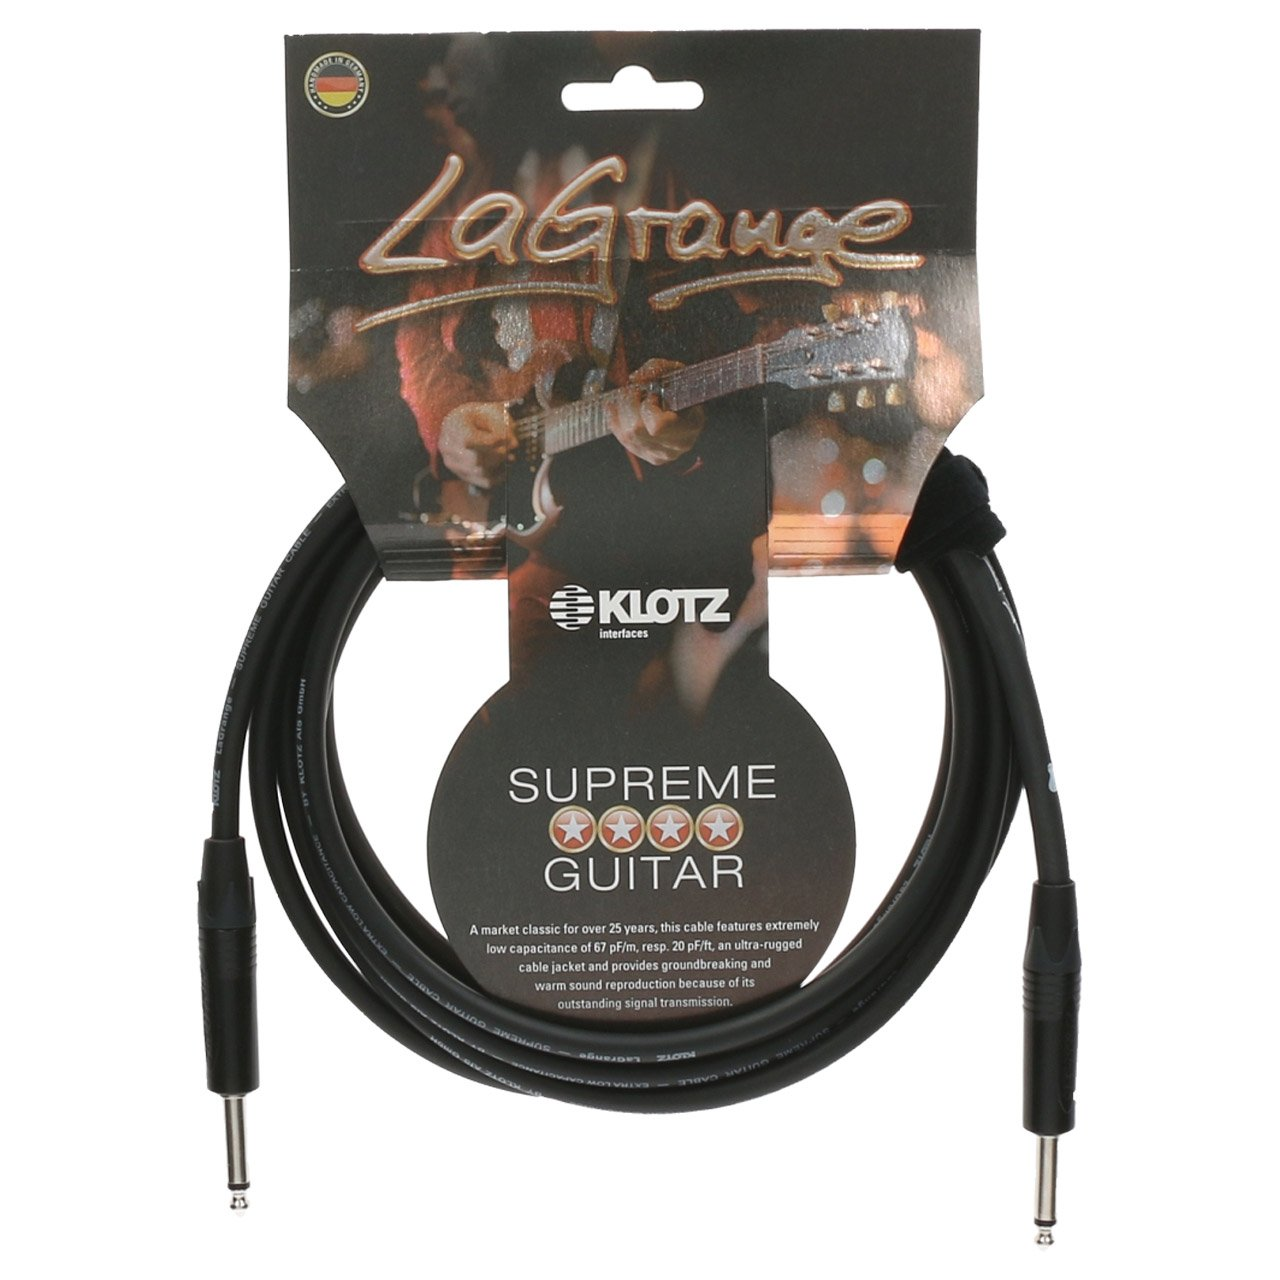 KLOTZ 20 Foot LaGrange Instrument Cable (KLO-LAPP0600)